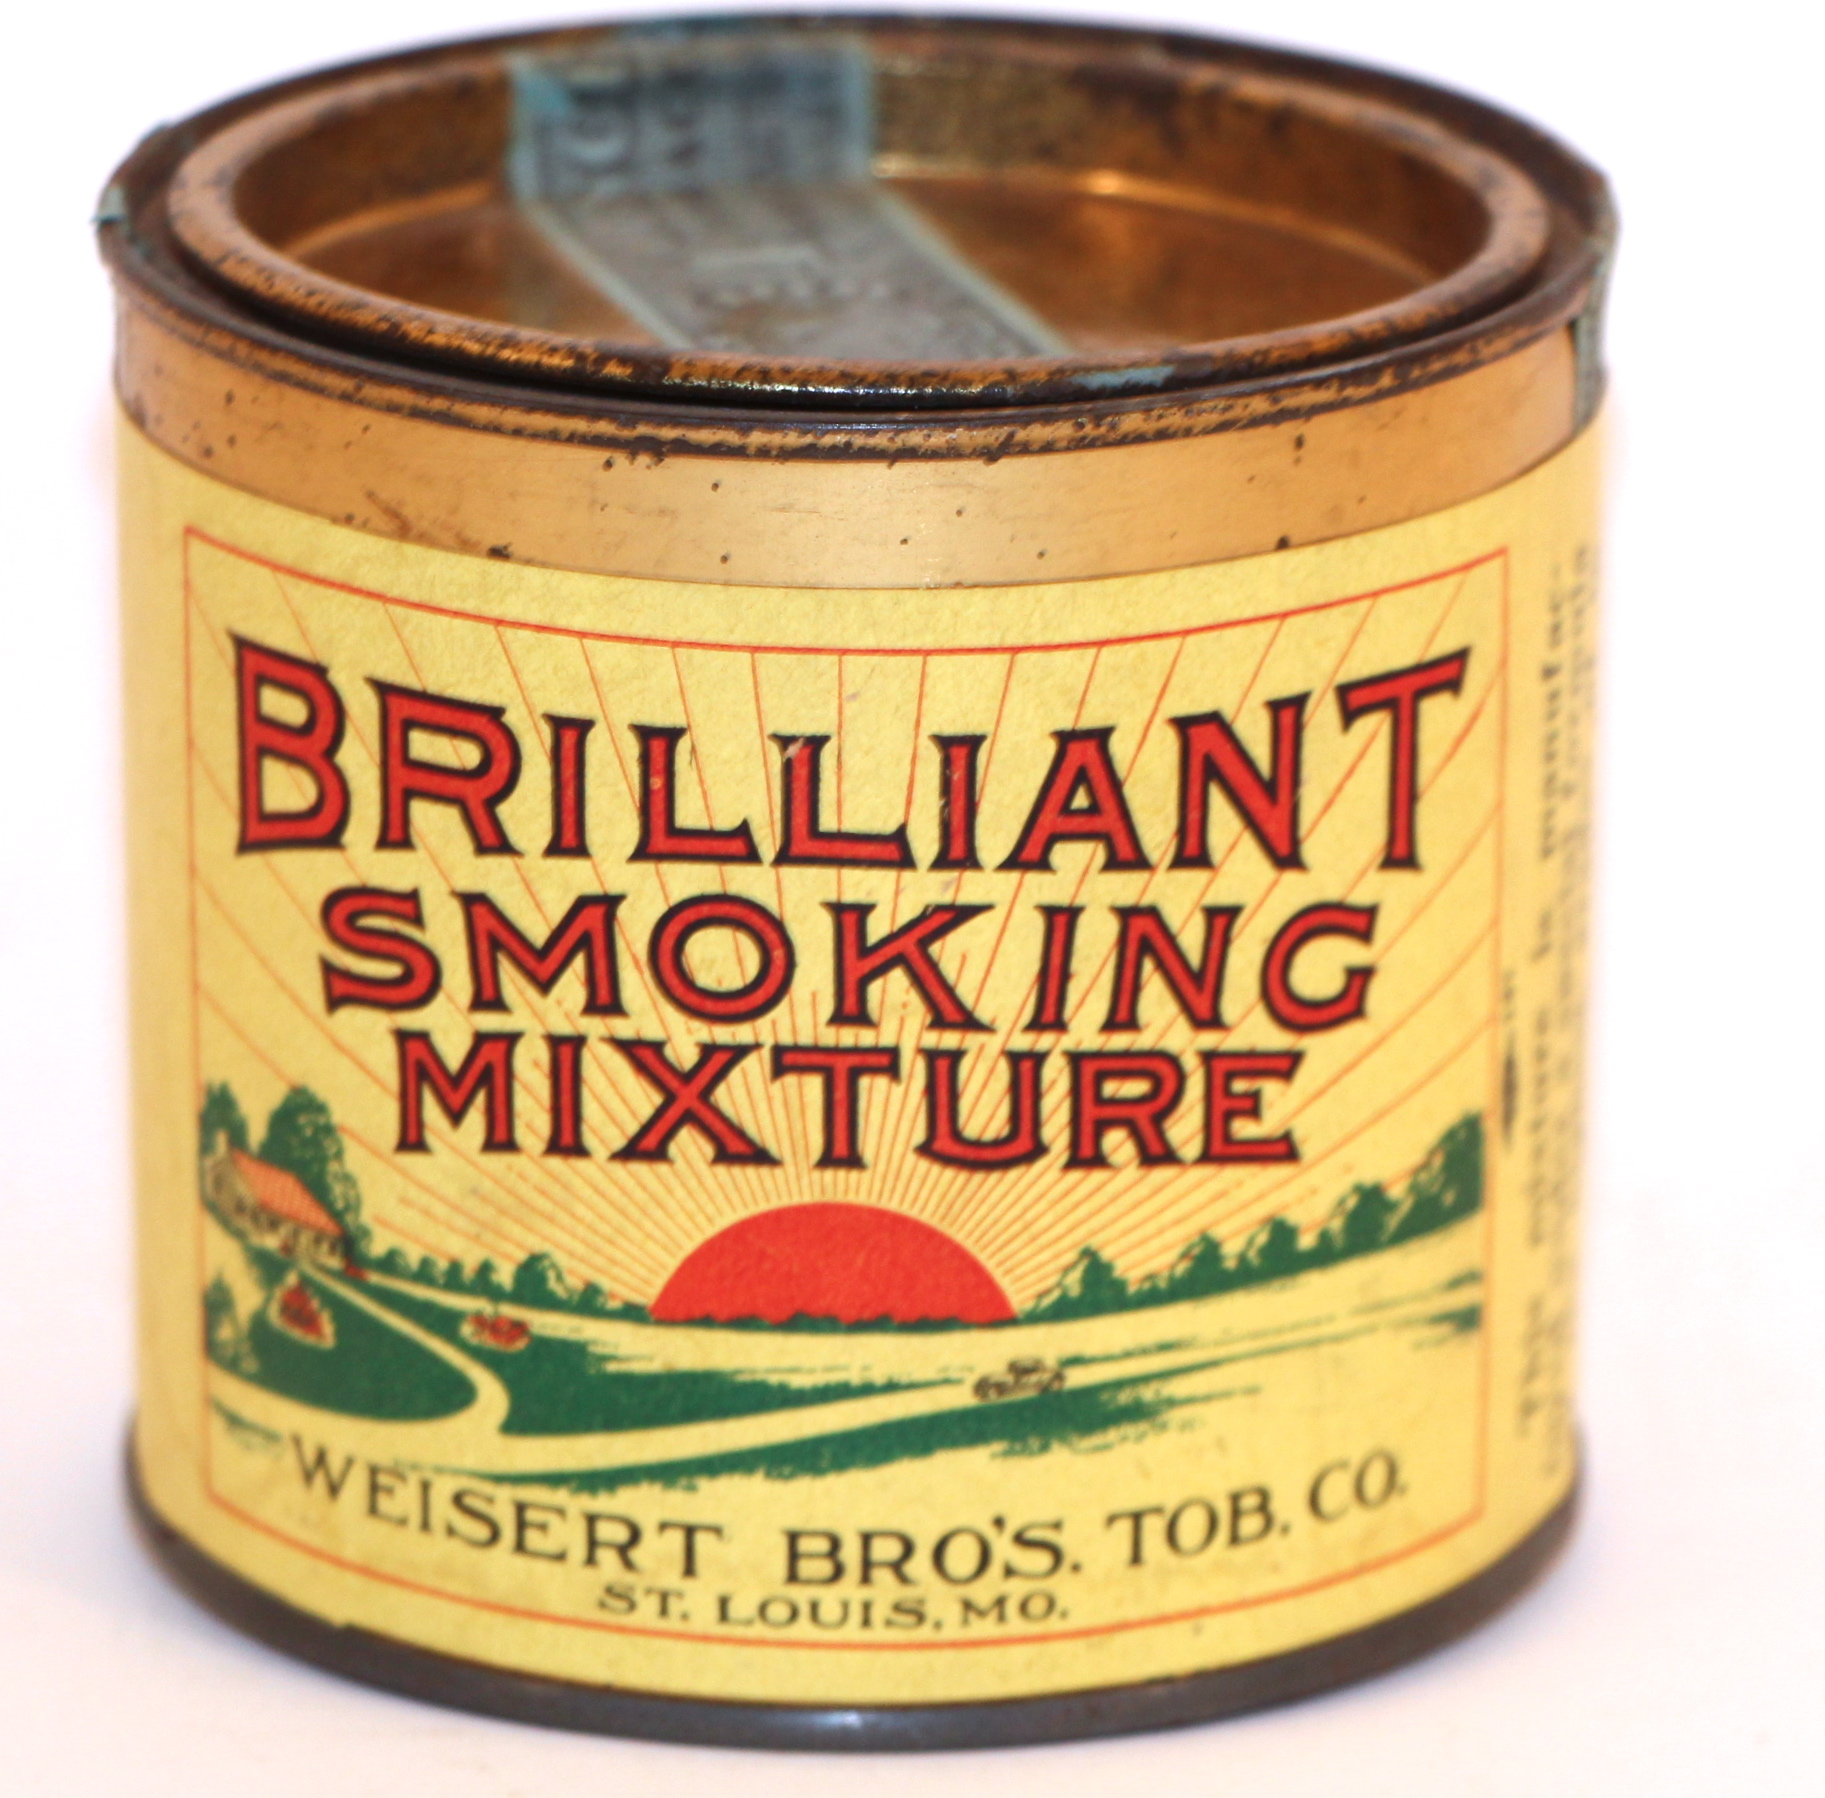 Brilliant Smoking Mixture, John Weisert Tobacco Co., St. Louis, MO